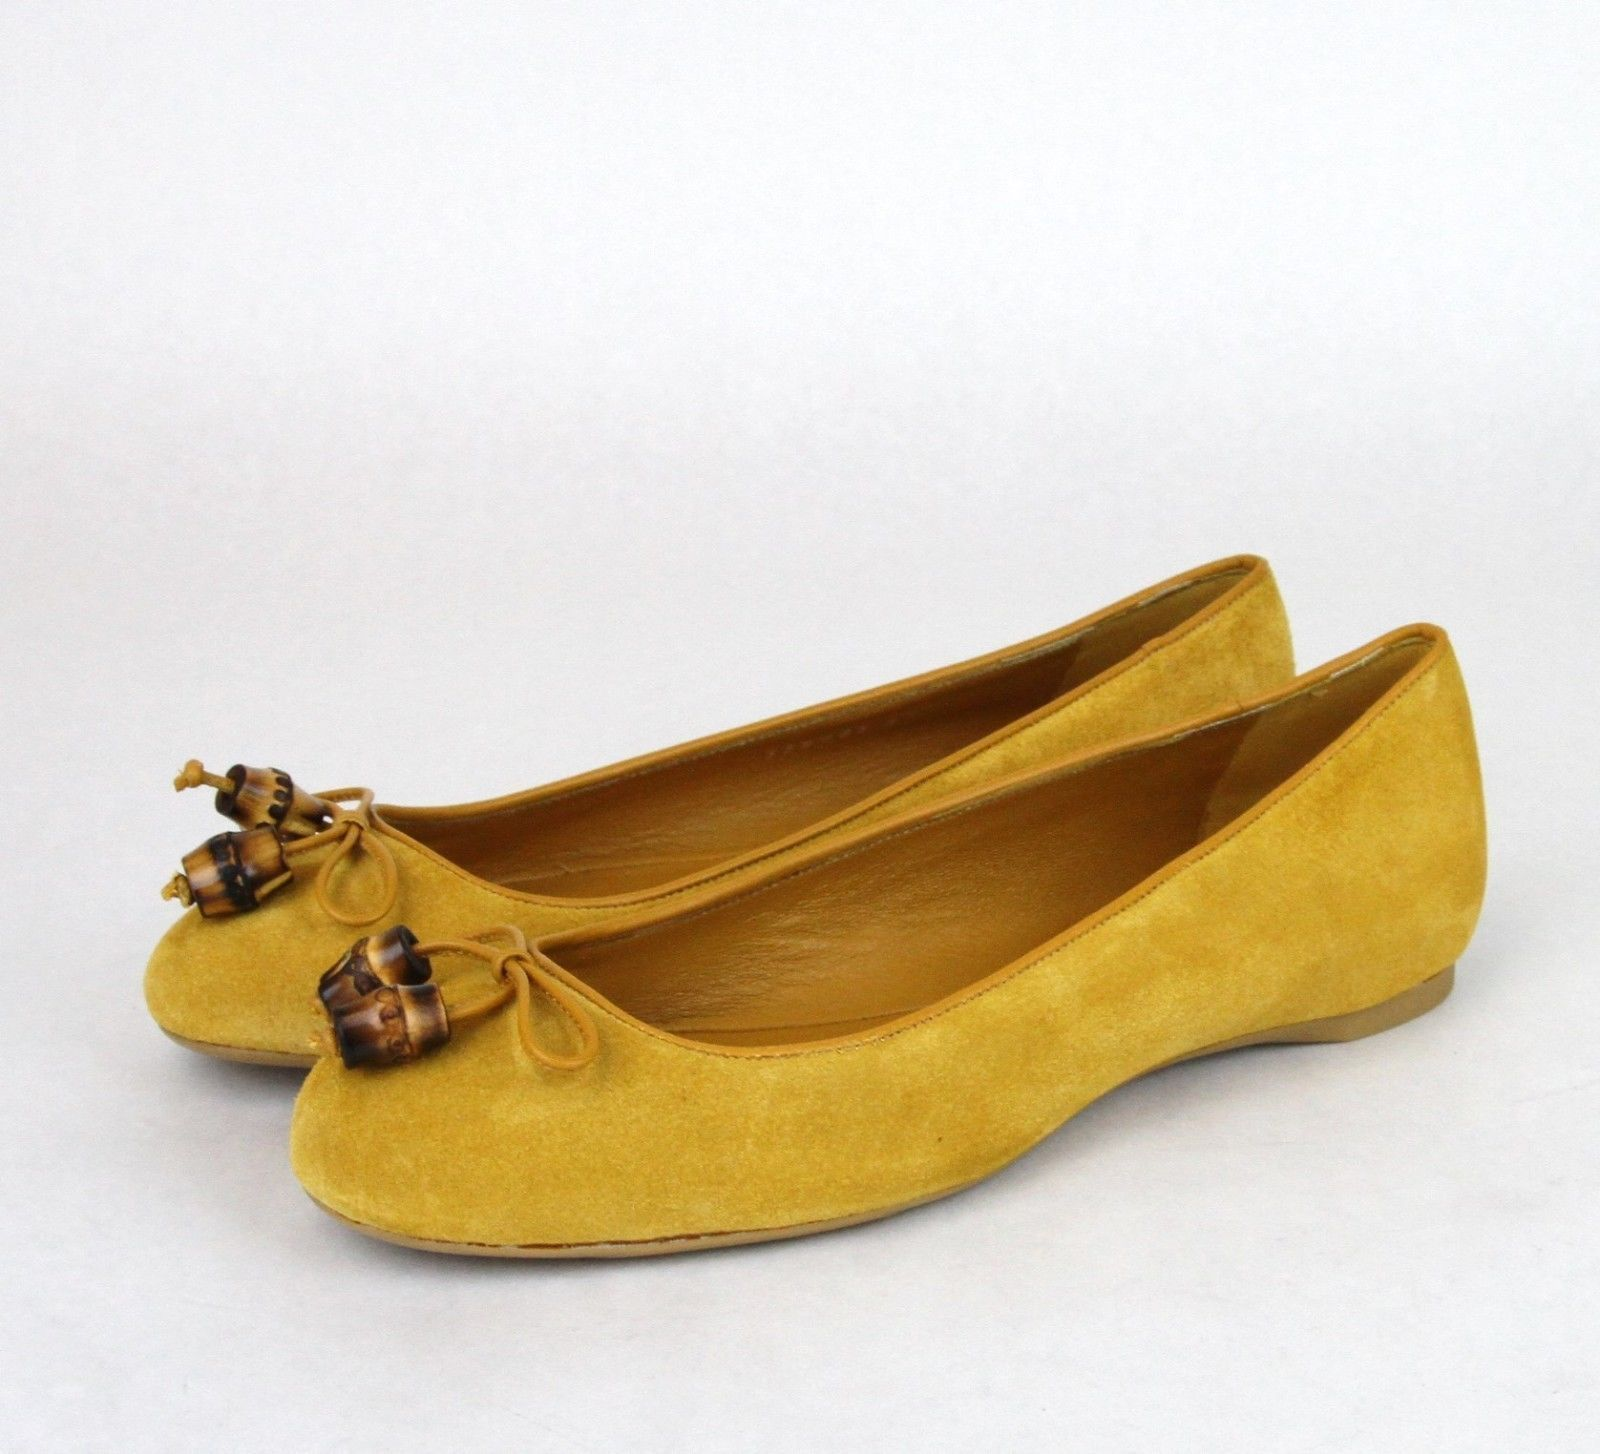 f03fe9e64 New Authentic GUCCI Womens Suede Bamboo Bow Ballet Flat Shoes Size ...